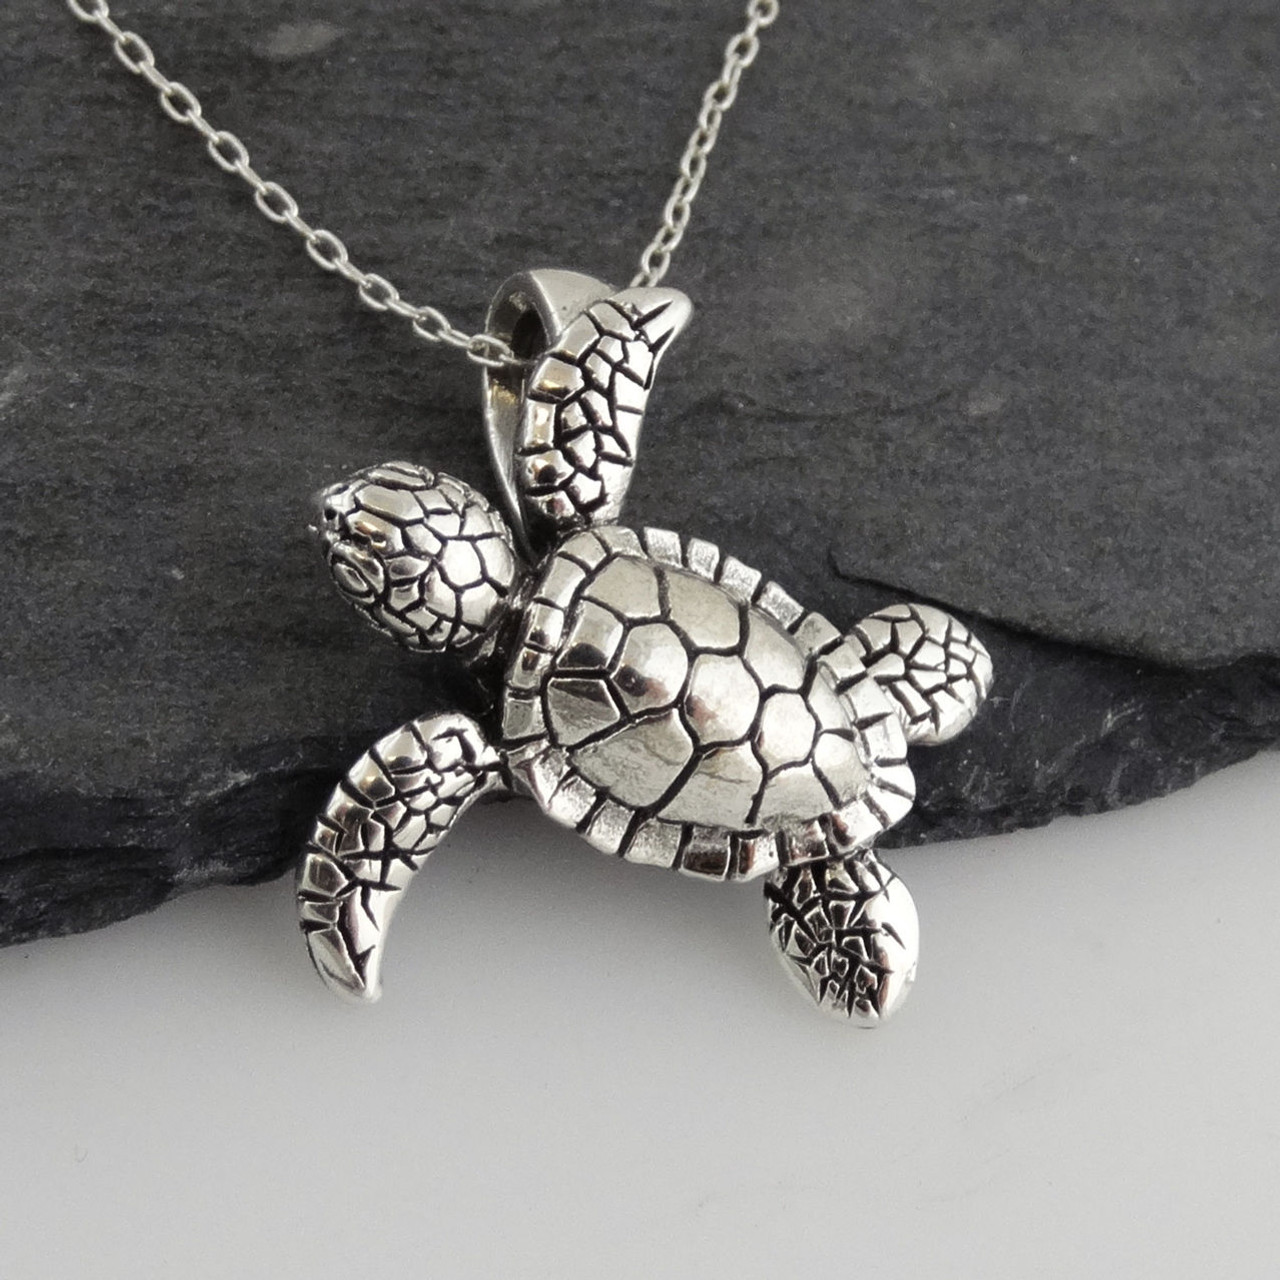 Baby sea turtle 3d necklace 925 sterling silver fashionjunkie4life baby sea turtle 3d necklace 925 sterling silver aloadofball Gallery